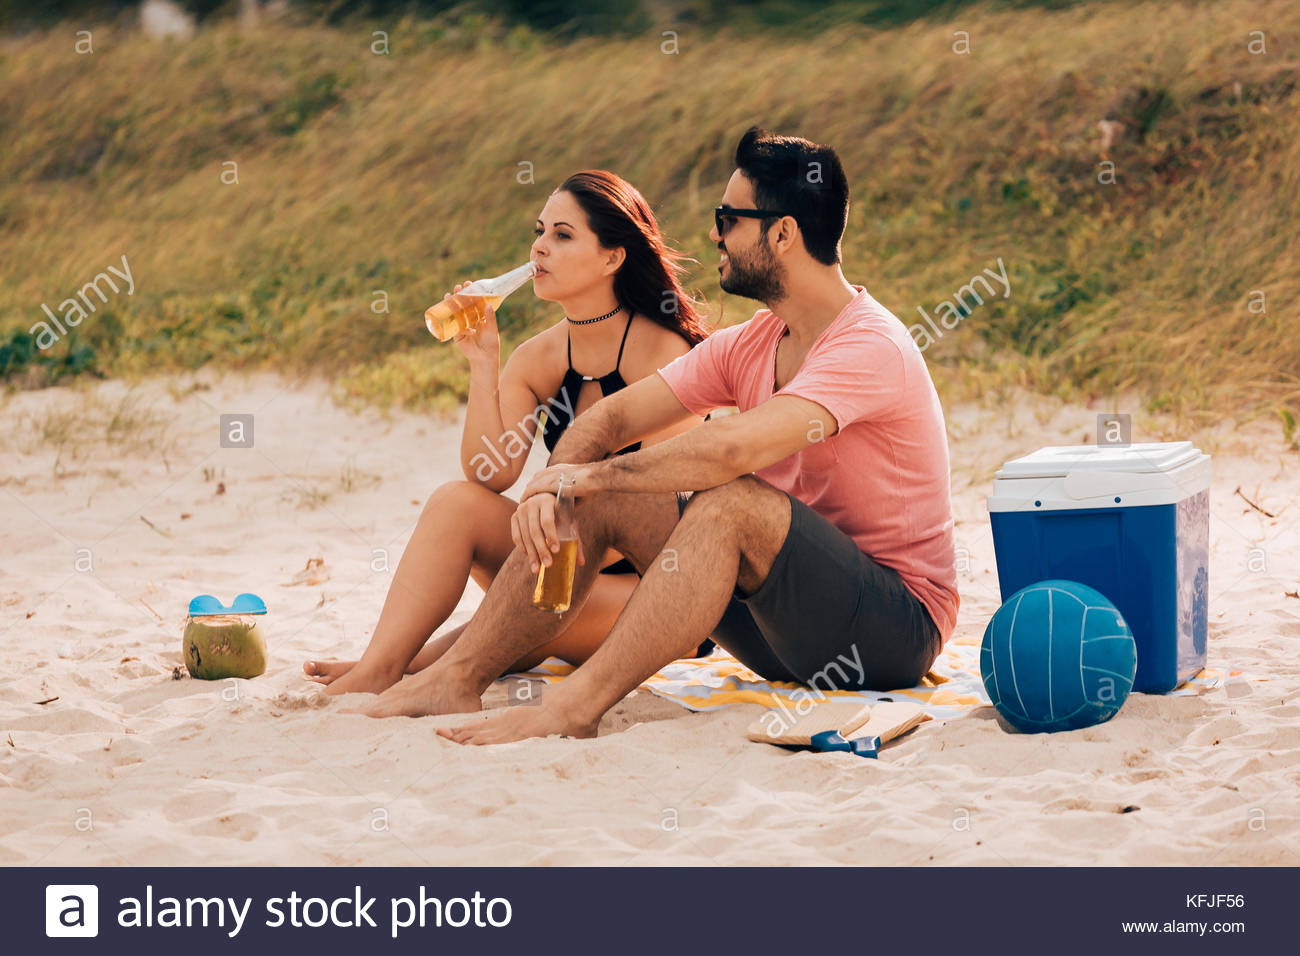 Couple drinking beer and having fun on the beach - Stock Image